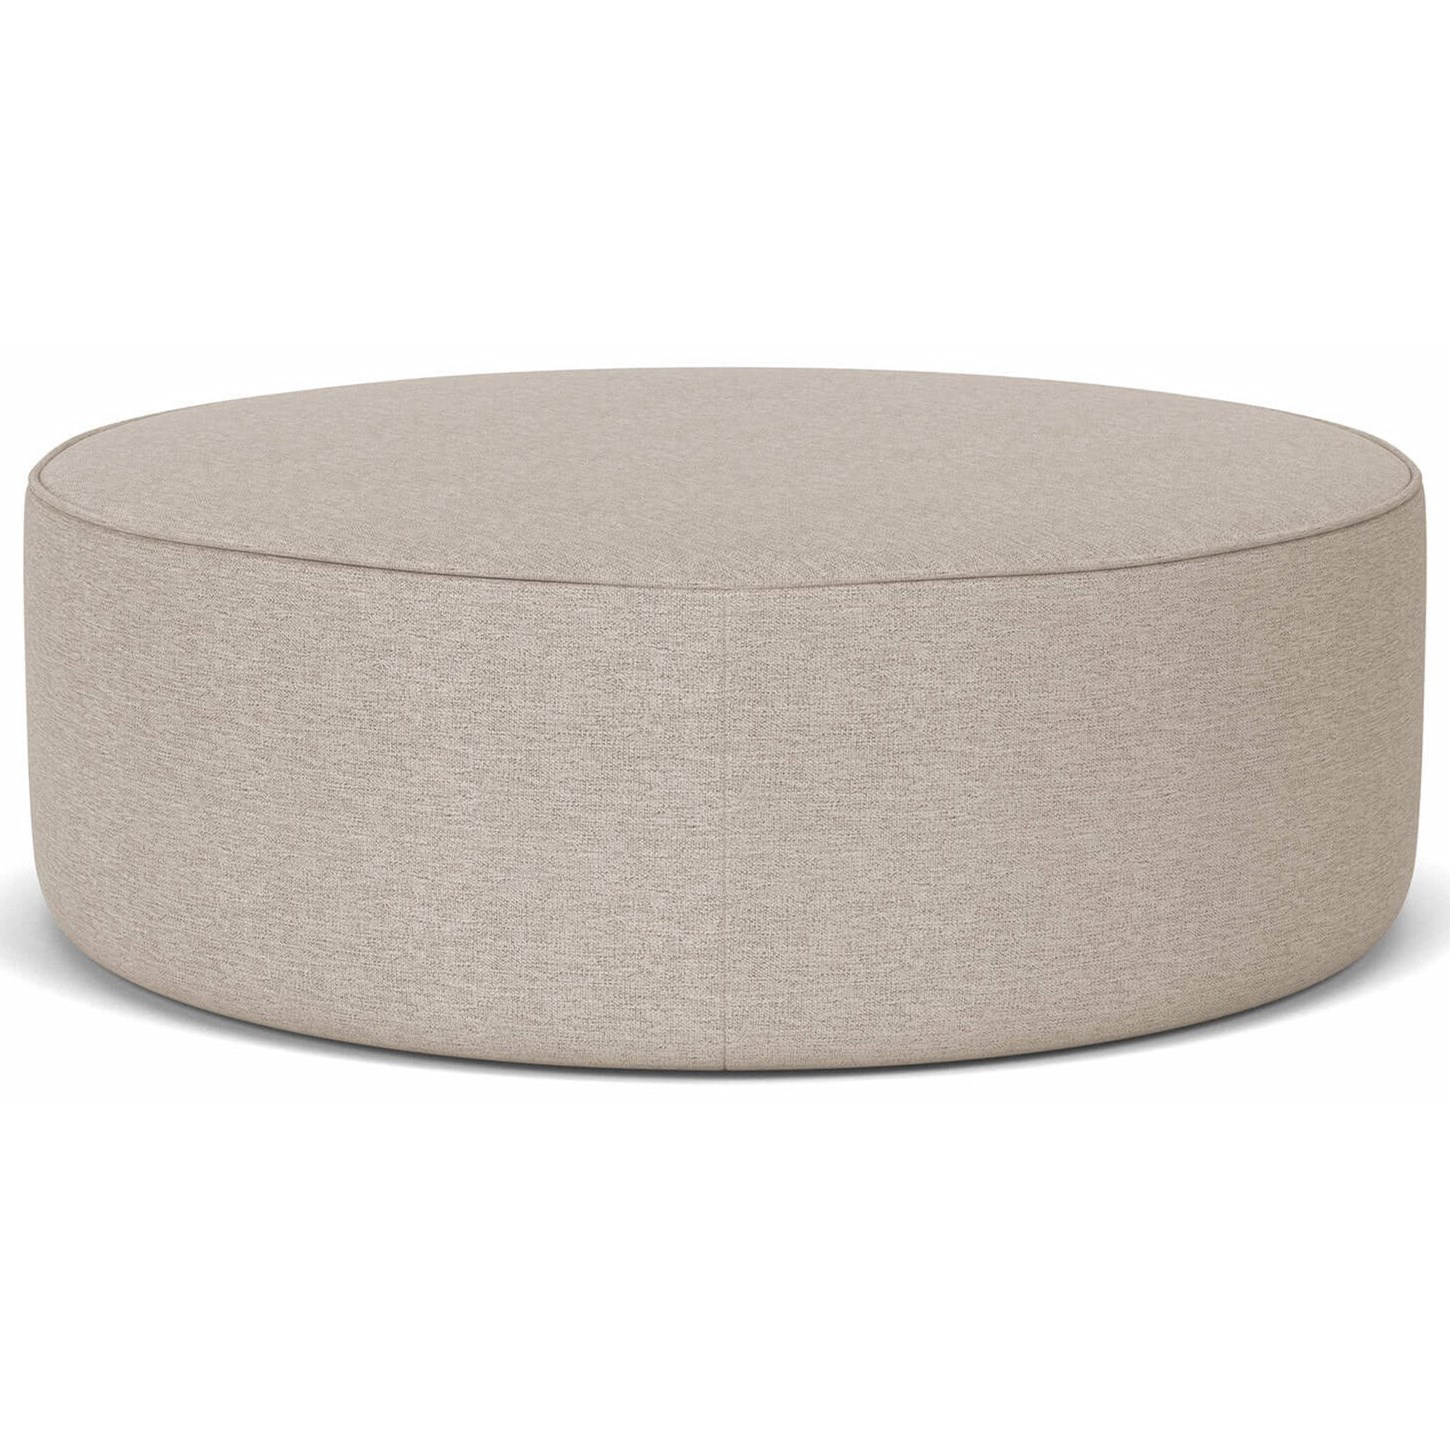 Courtyard Round Cocktail Ottoman  by Palliser at Furniture and ApplianceMart